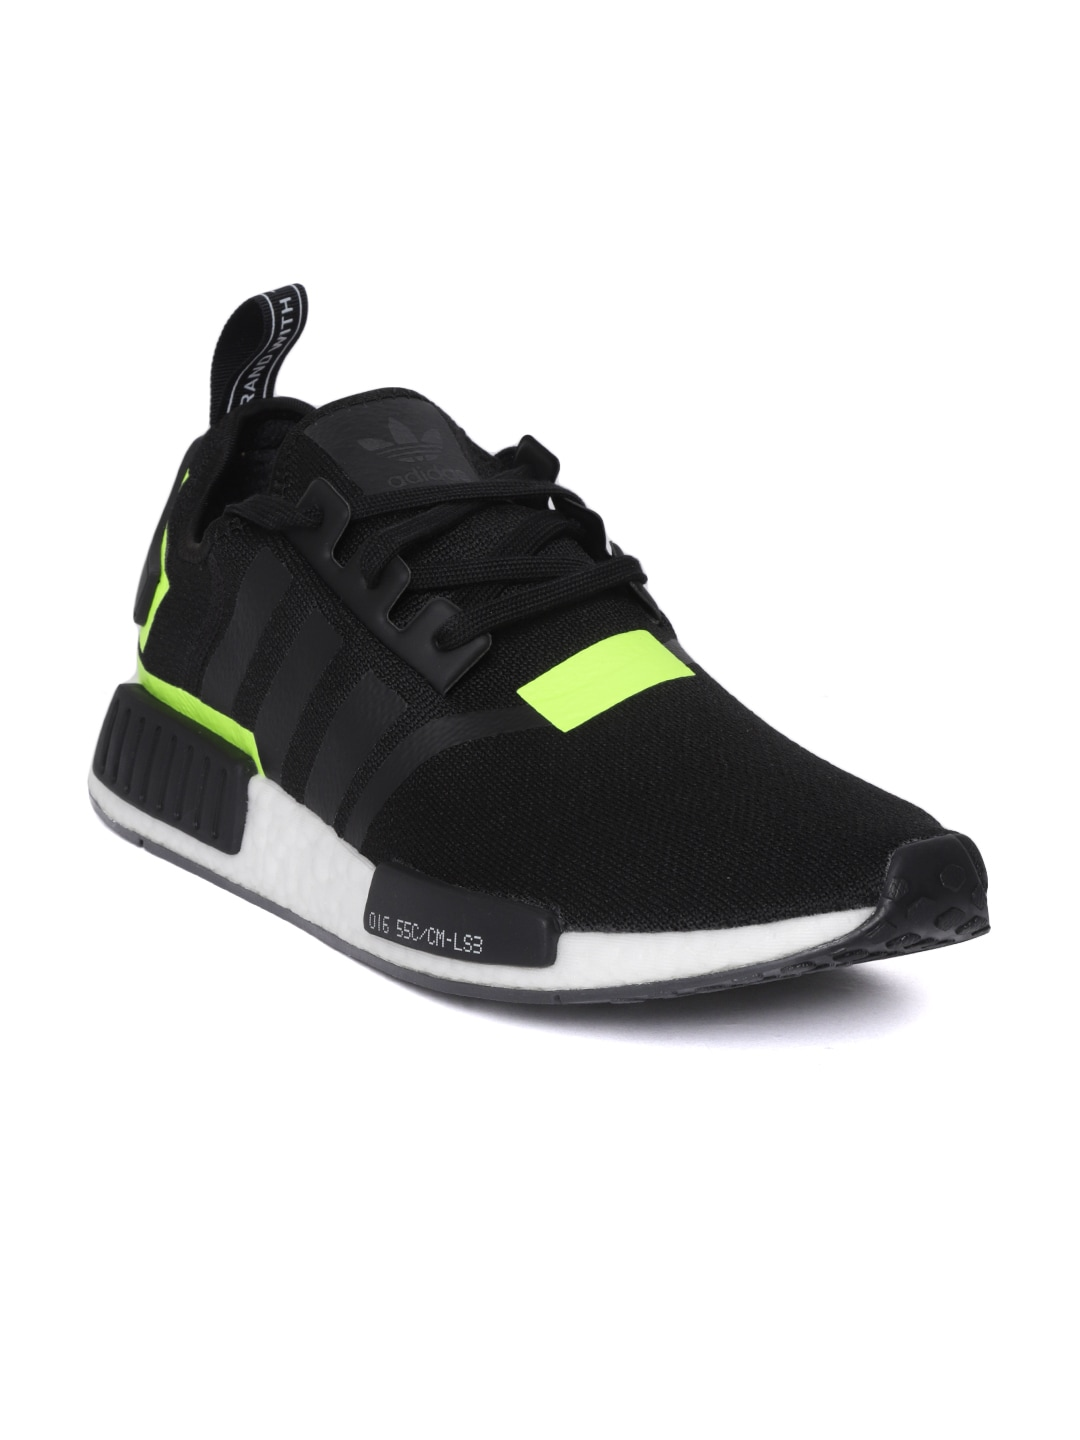 buy popular 86fc1 036f3 Adidas Shoes - Buy Adidas Shoes for Men   Women Online - Myntra